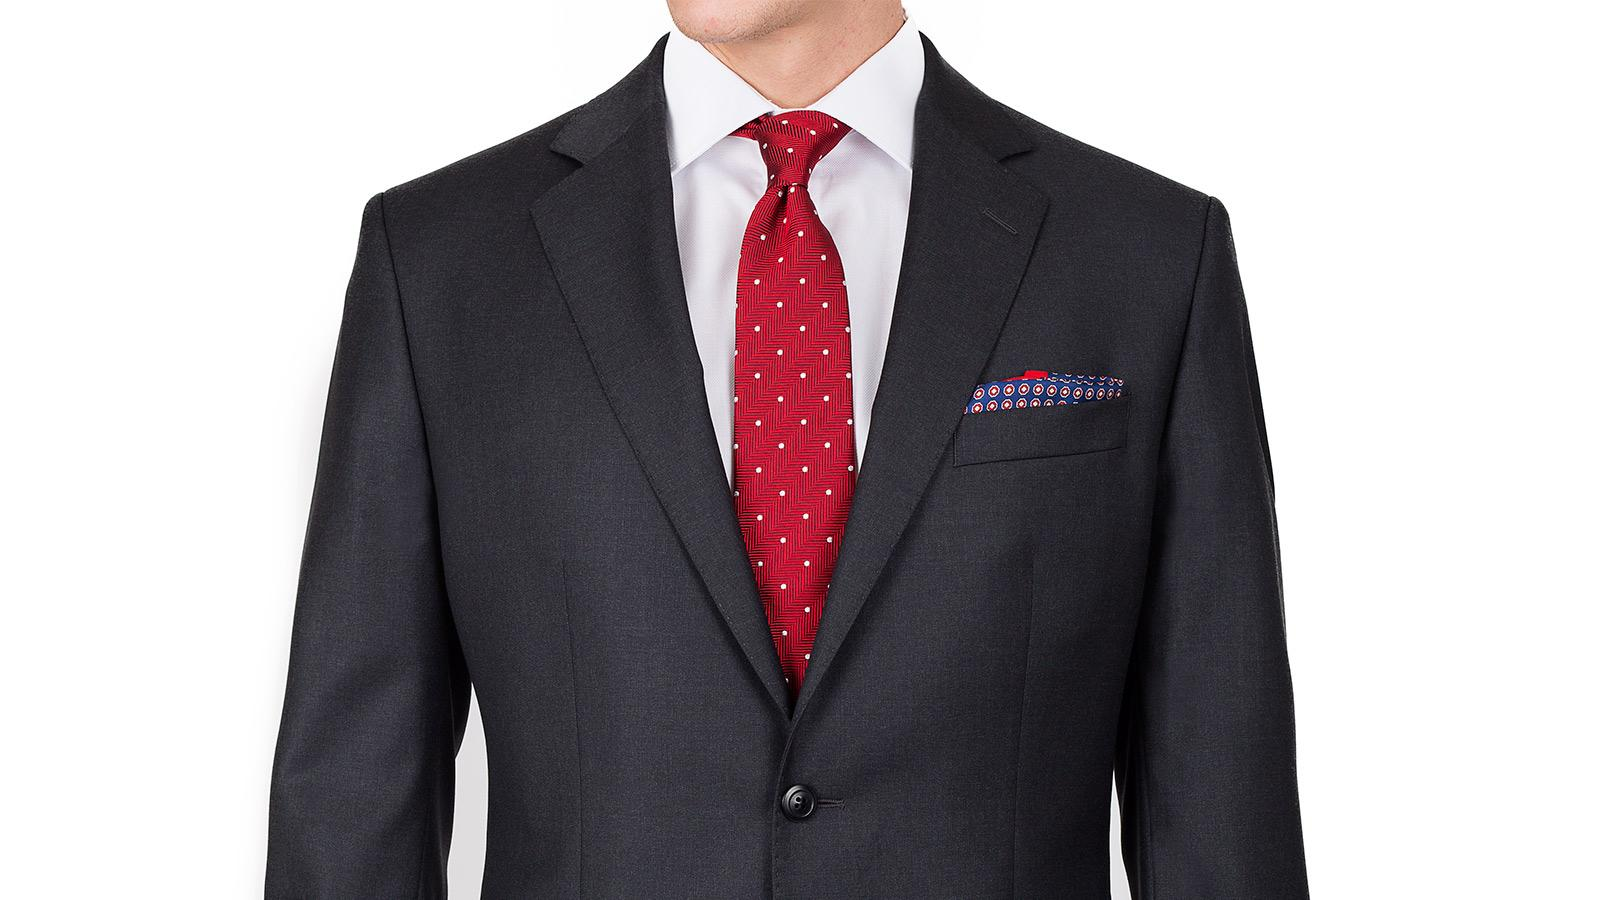 Premium Charcoal Suit - slider image 1